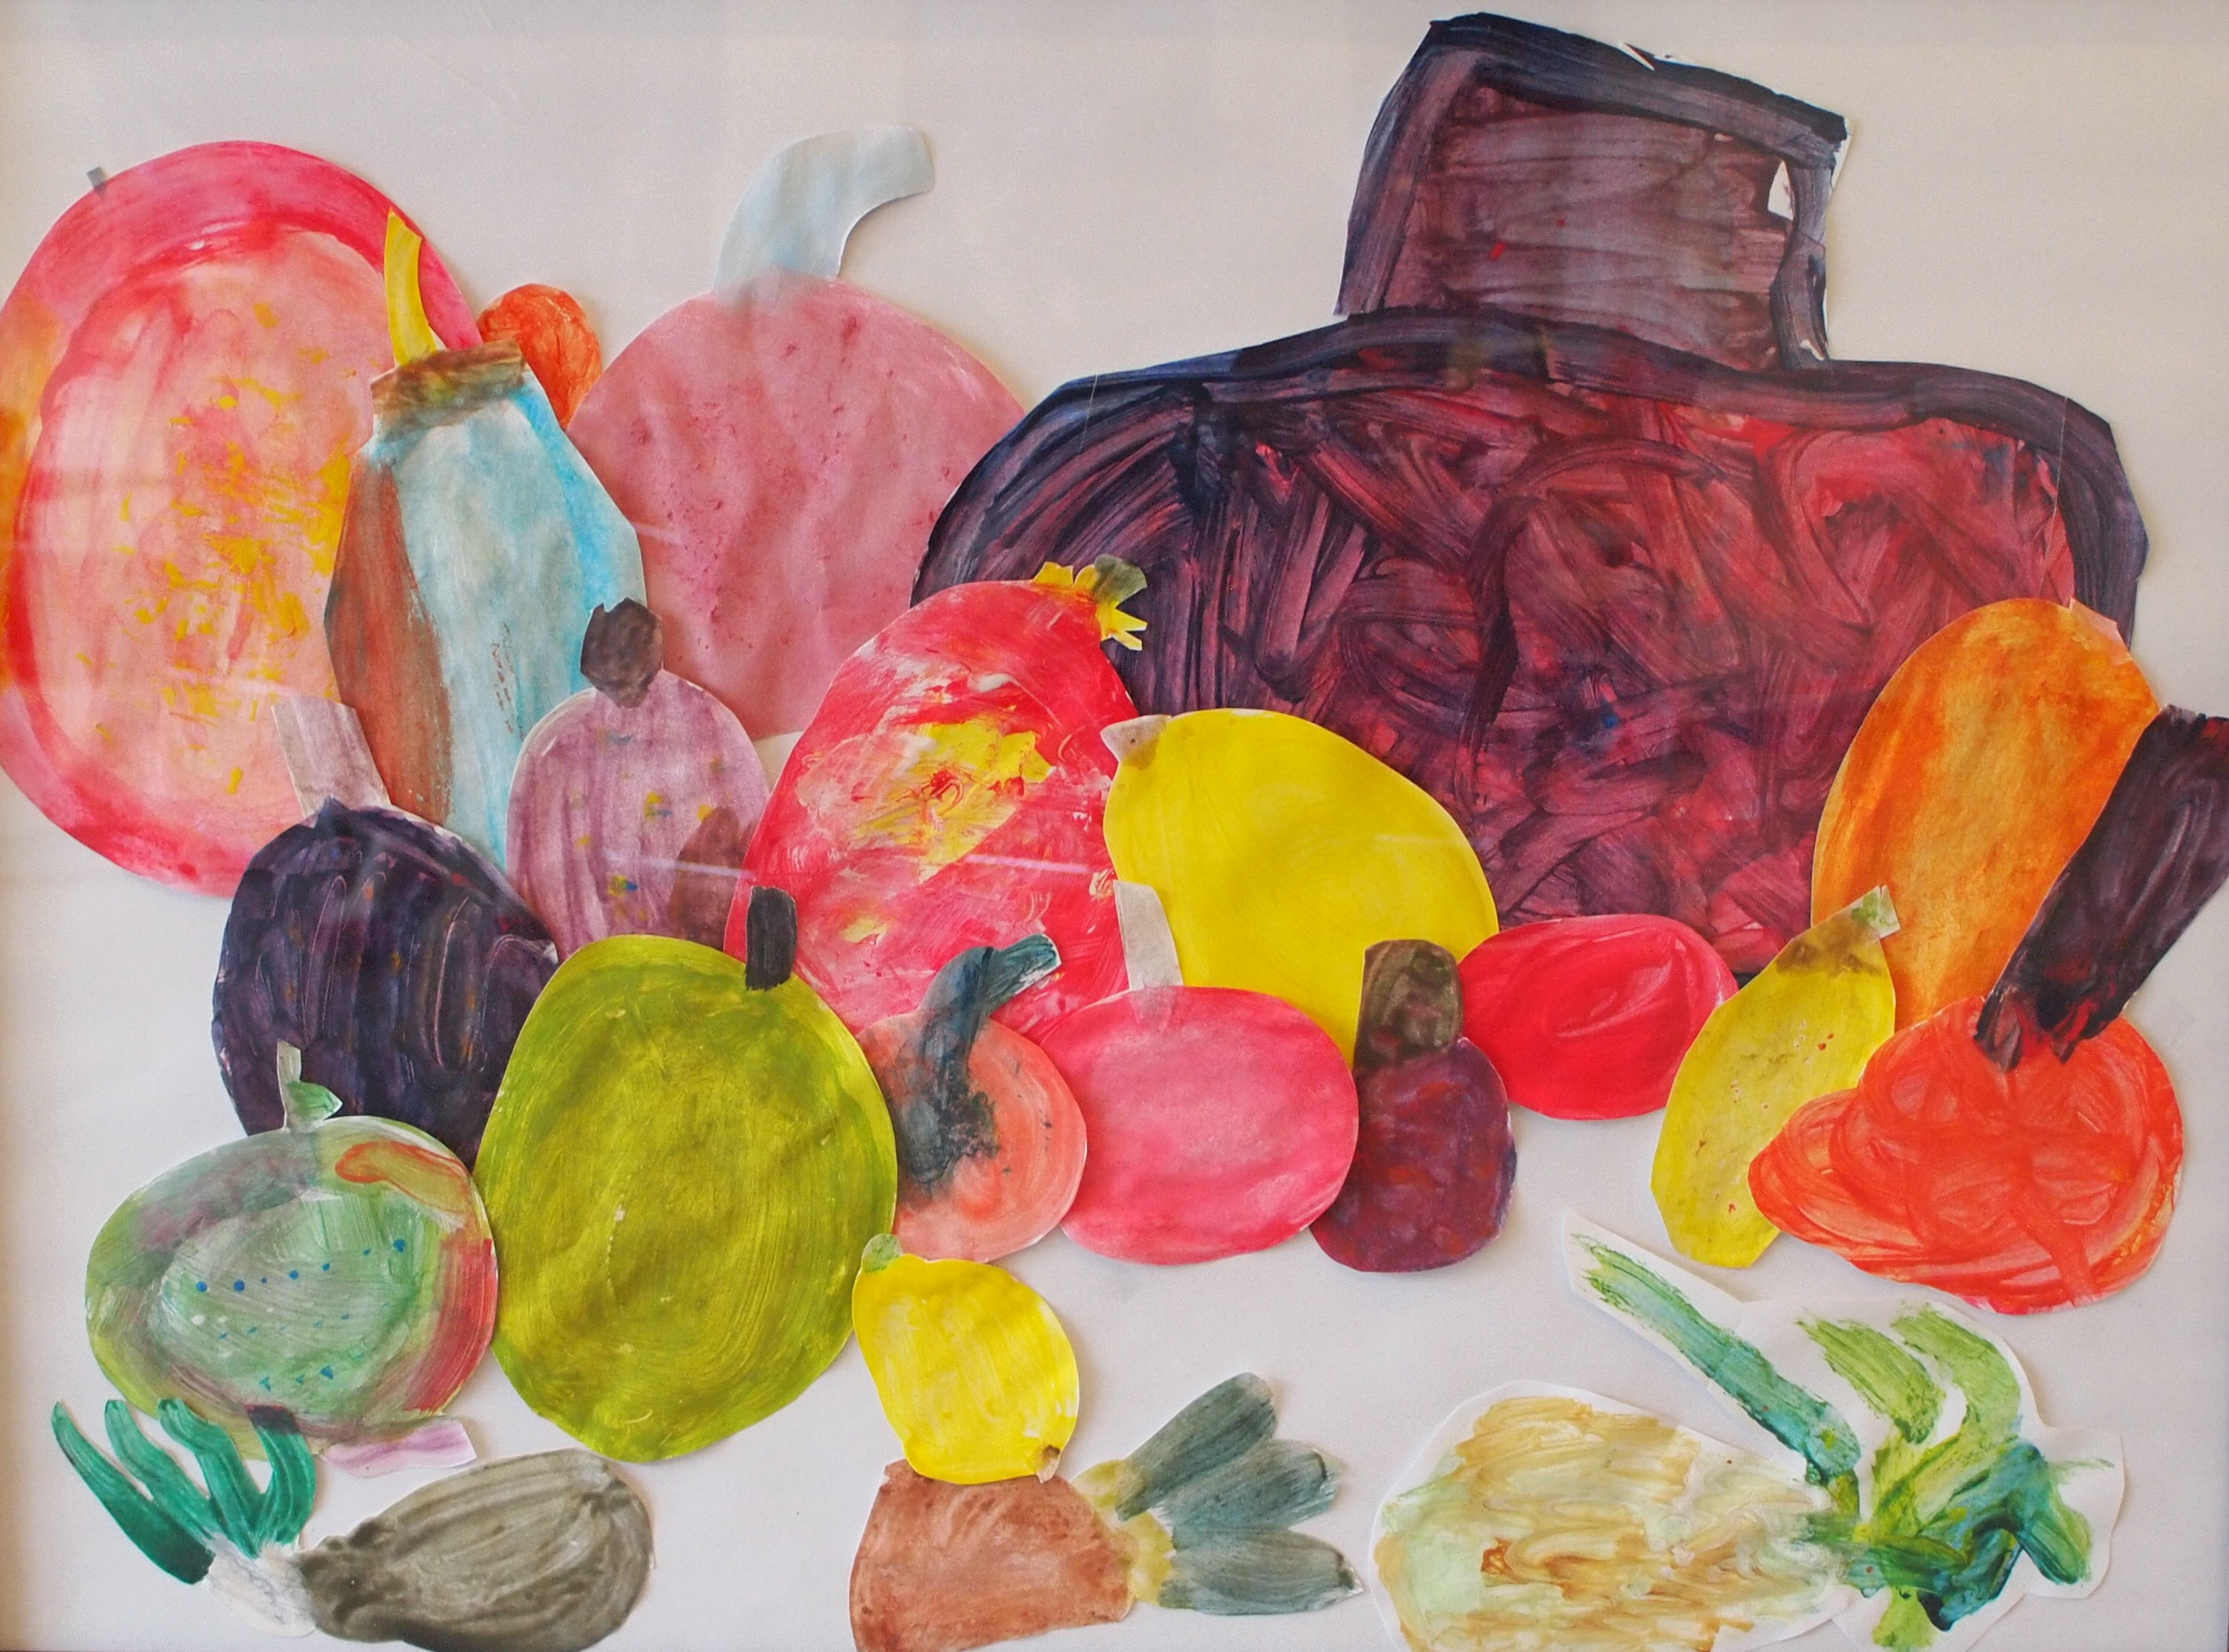 Fruit Bowl, a collaborative collage by Grades 1-2 students featuring cut-out shapes of painted fruit assembled together on a white background